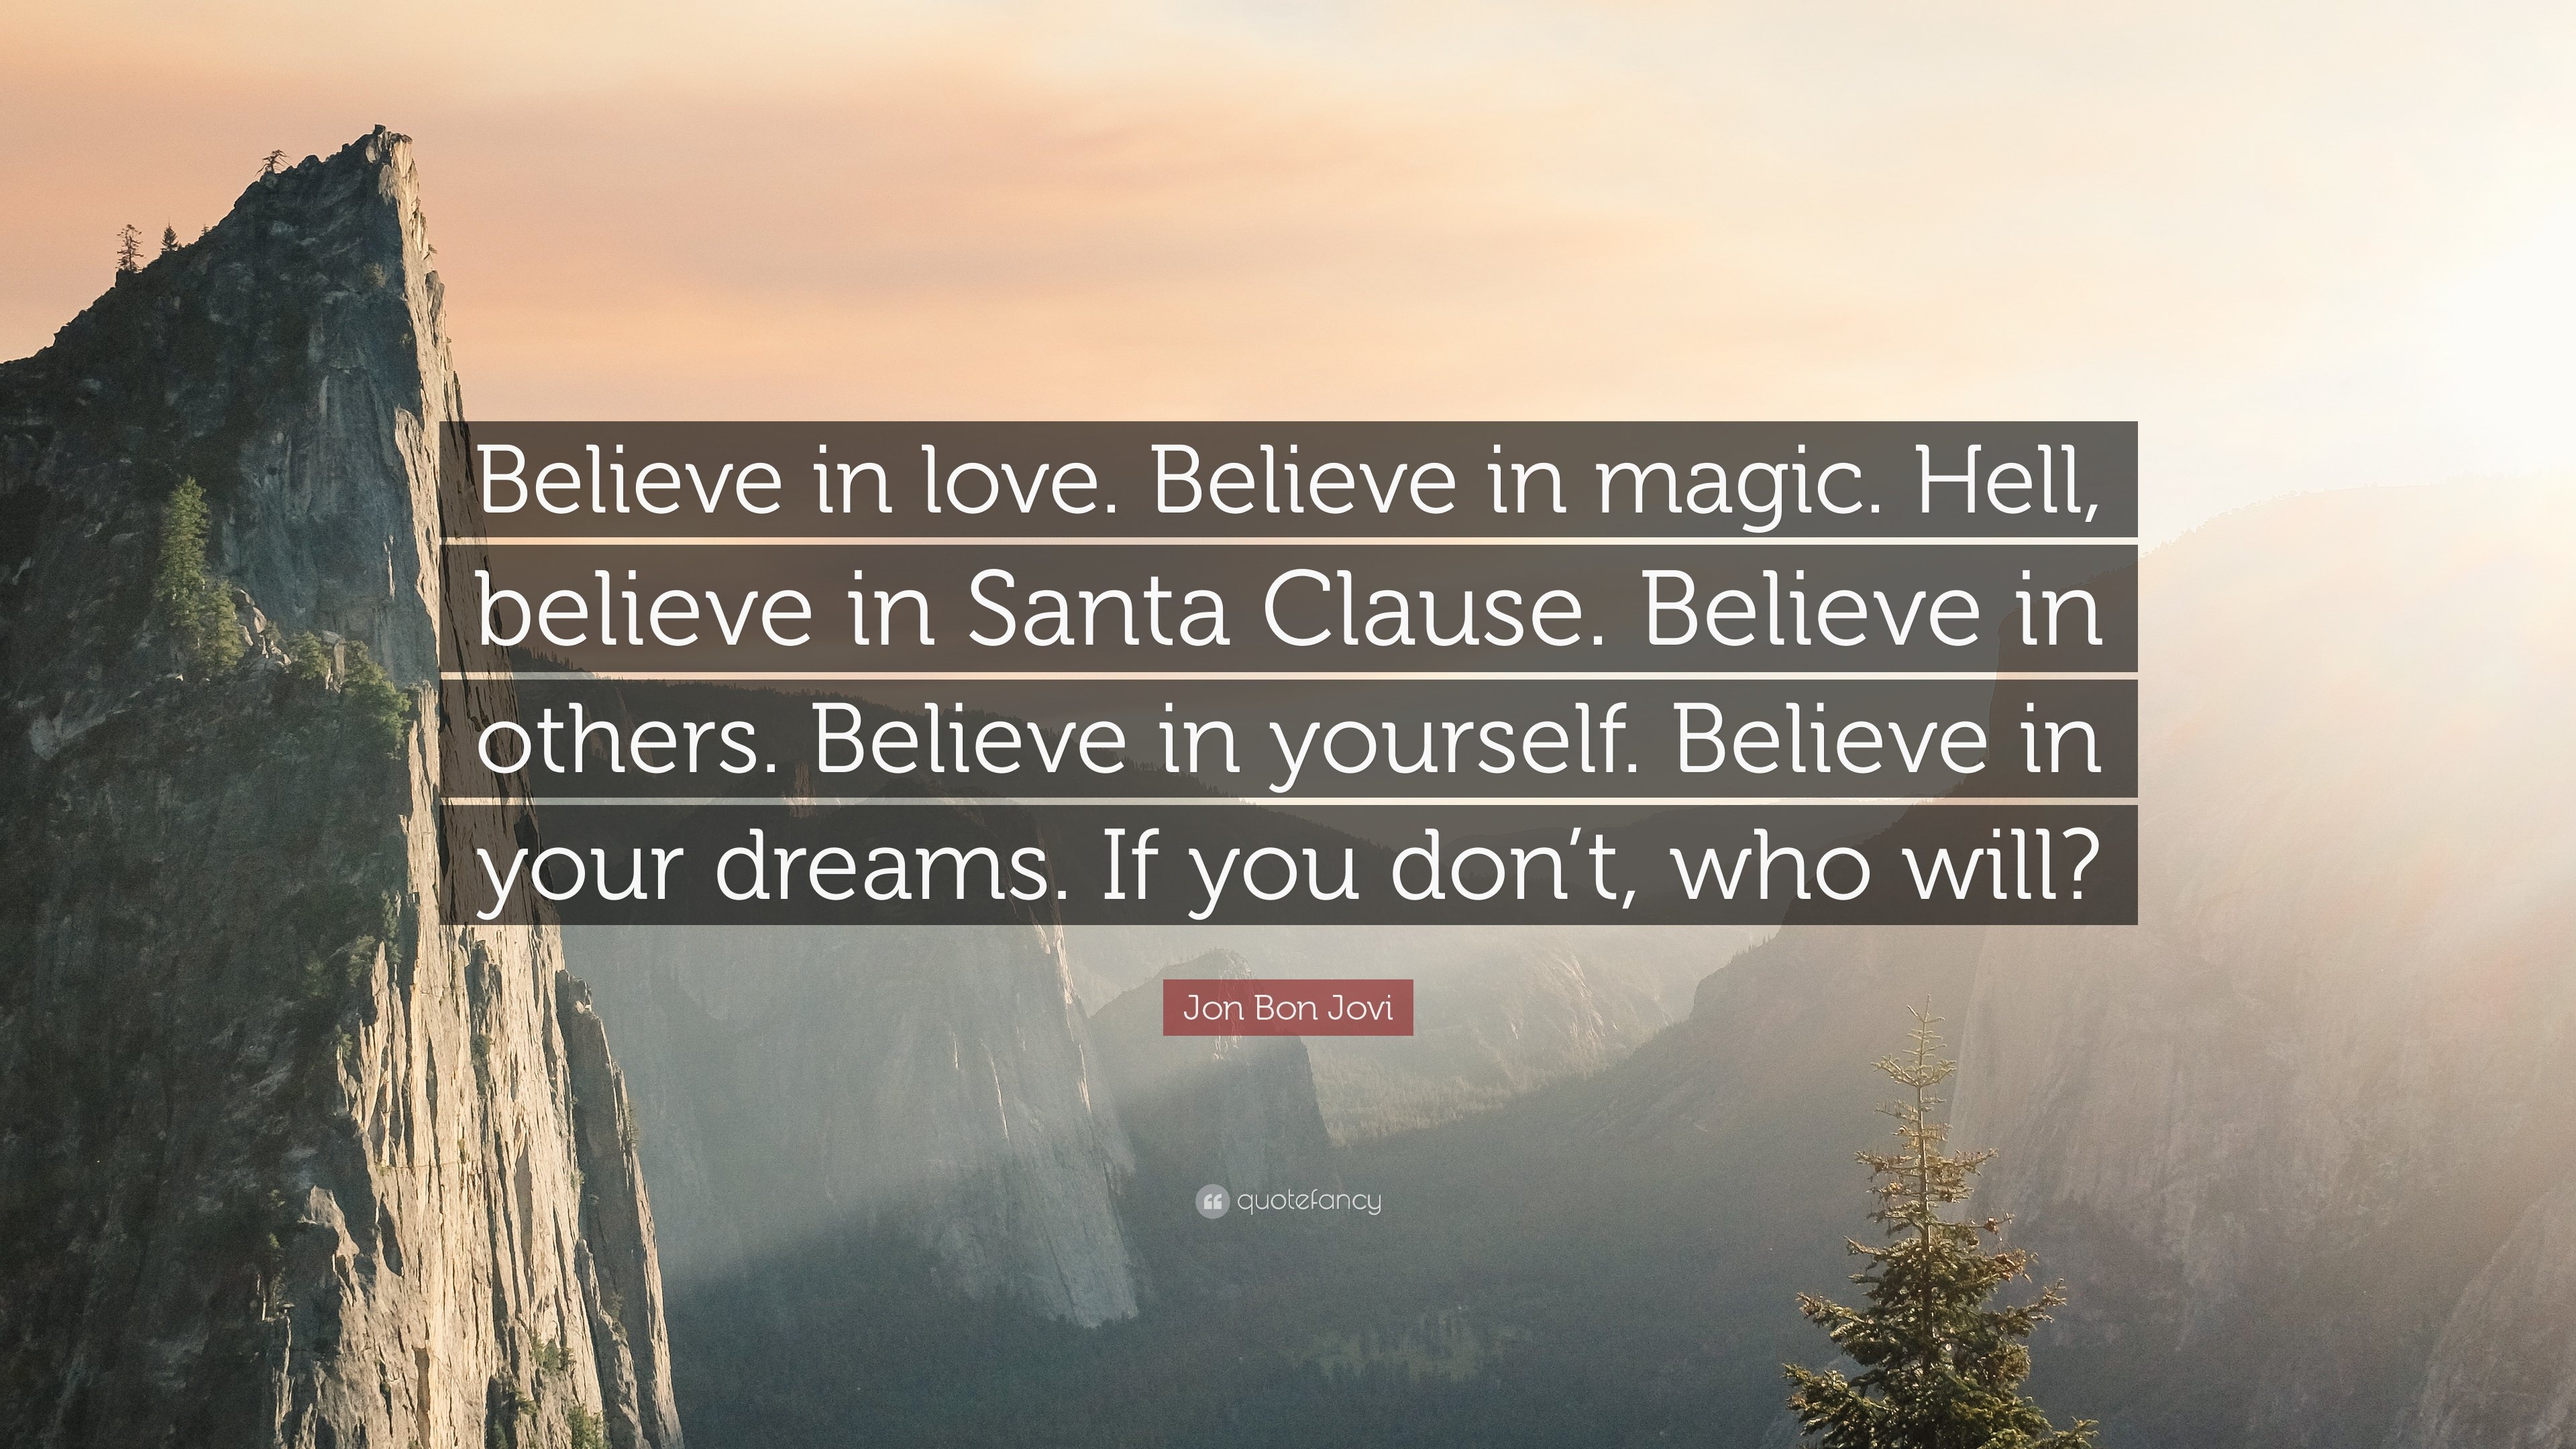 Believe In Love Quotes Belive In Love And Believe In Santa  Inspiring Quotes And Words